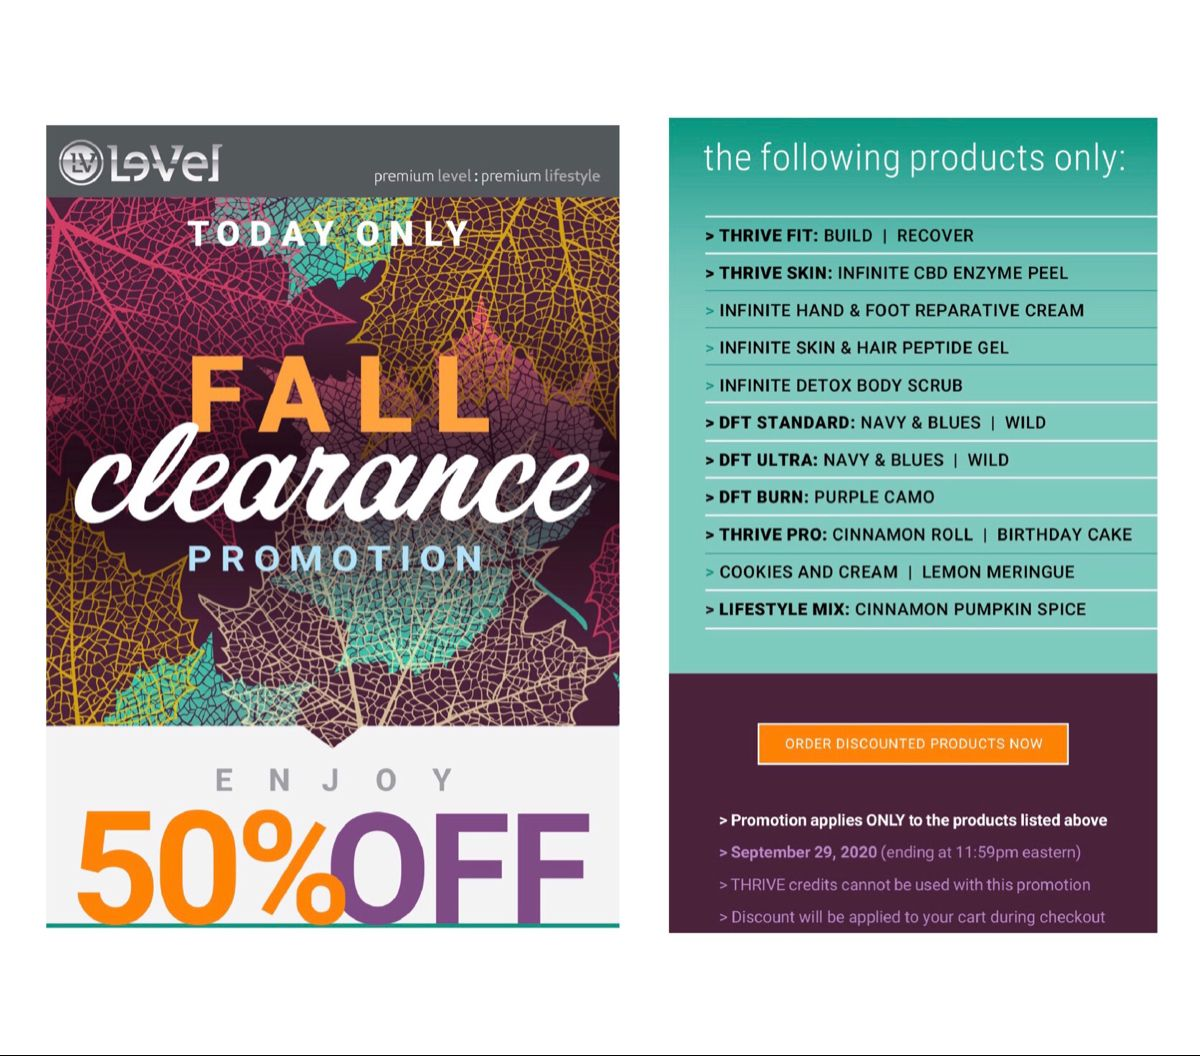 TODAY ONLY!!! Stock up and Save 50% on these selected Thrive products. What an incredible deal! #thrive #promotion #joinmyteam #askmehow